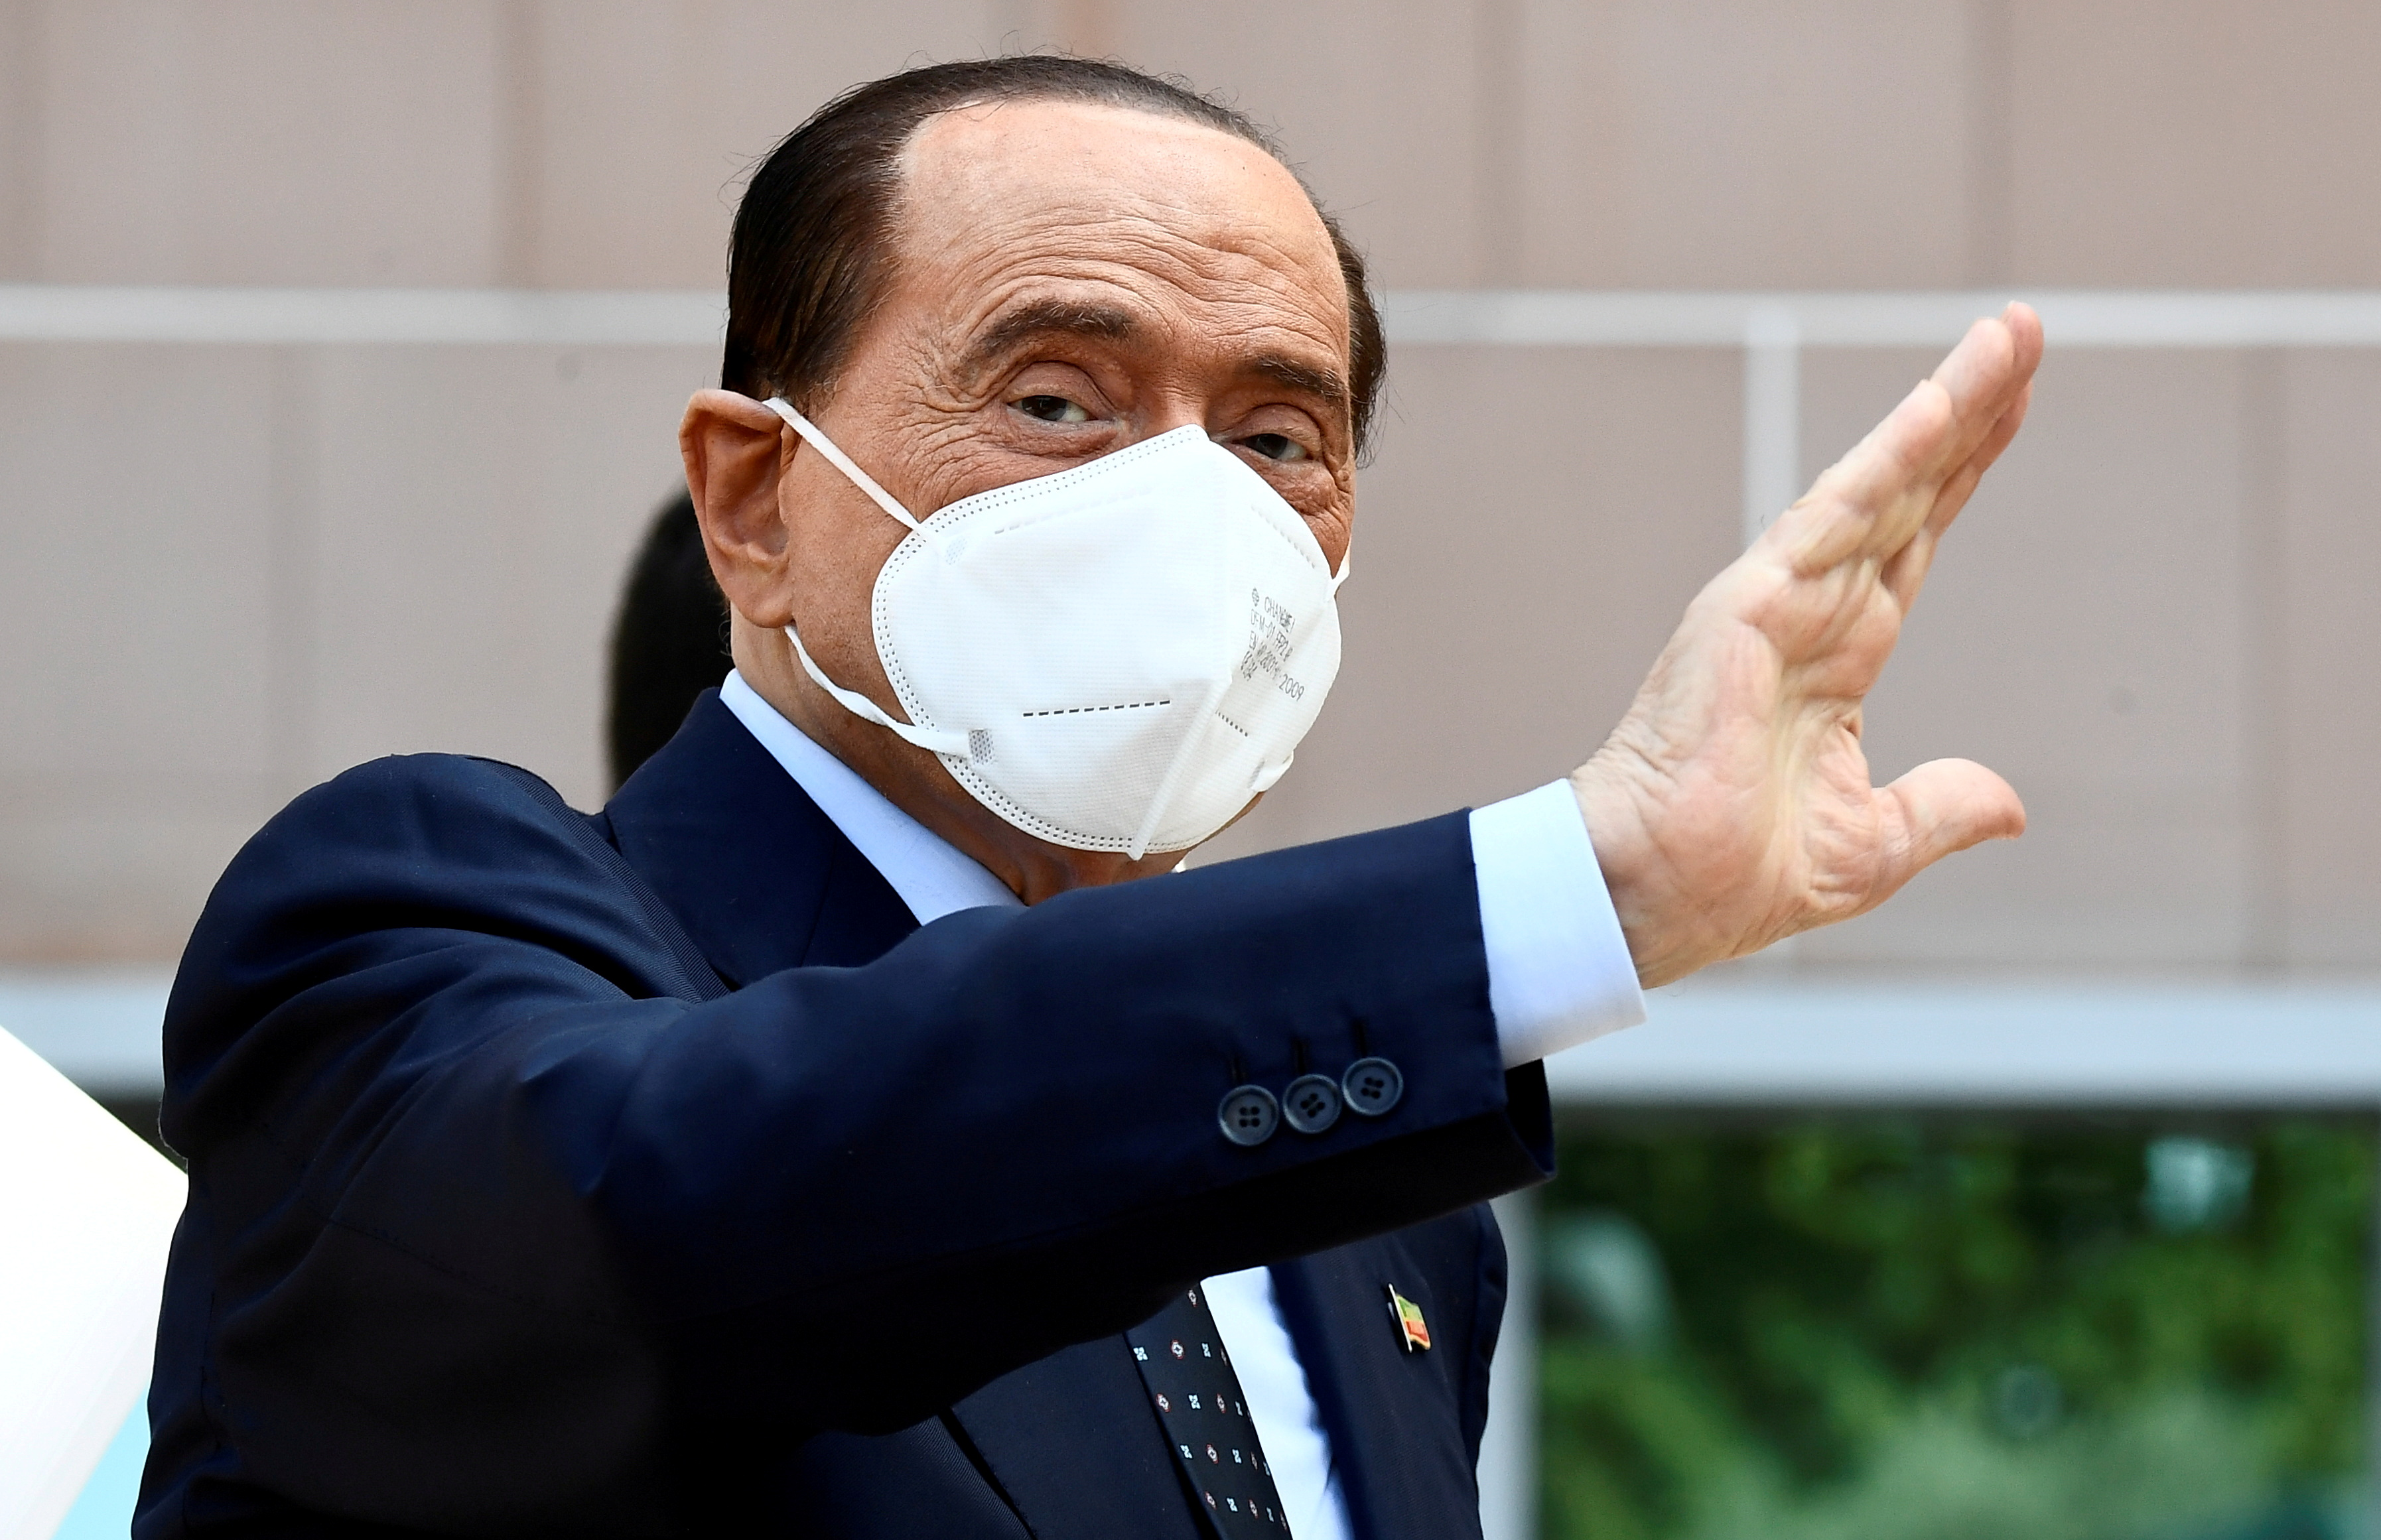 Former Italian Prime Minister Silvio Berlusconi gestures as he is discharged from Milan's San Raffaele hospital, where he was being treated after testing positive for the coronavirus disease (COVID-19) and diagnosed with mild pneumonia, in Milan, Italy, September 14, 2020. REUTERS/Flavio Lo Scalzo//File Photo